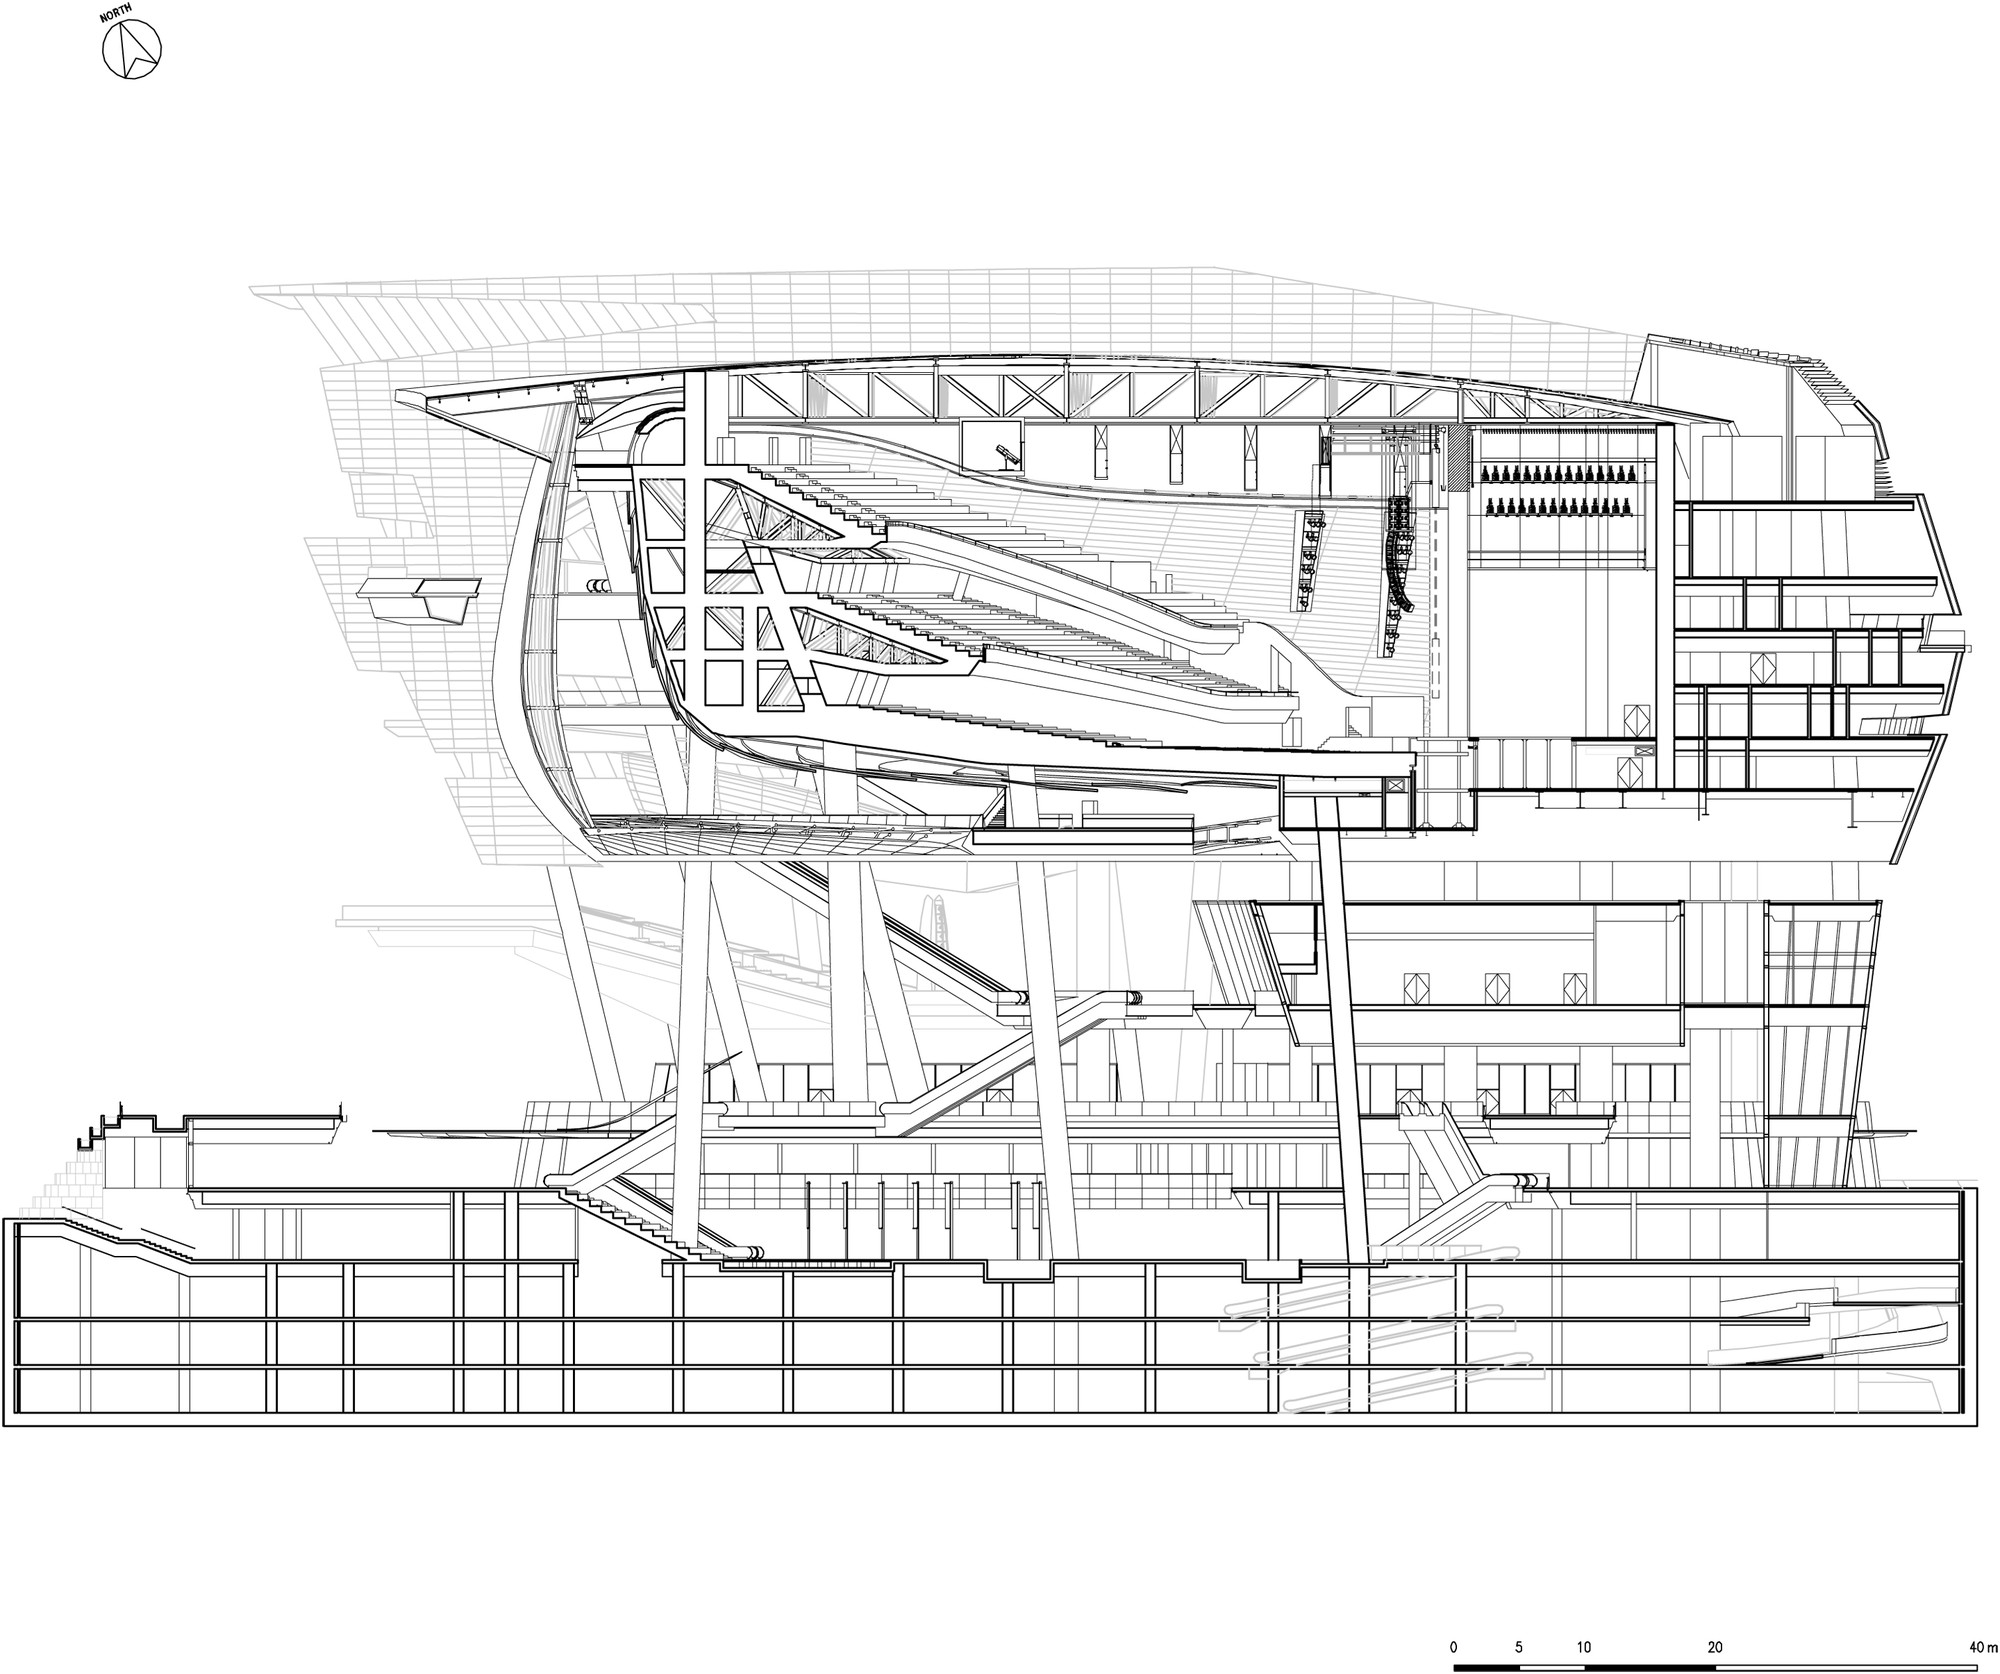 Siemens Crystal Building Structural Plans